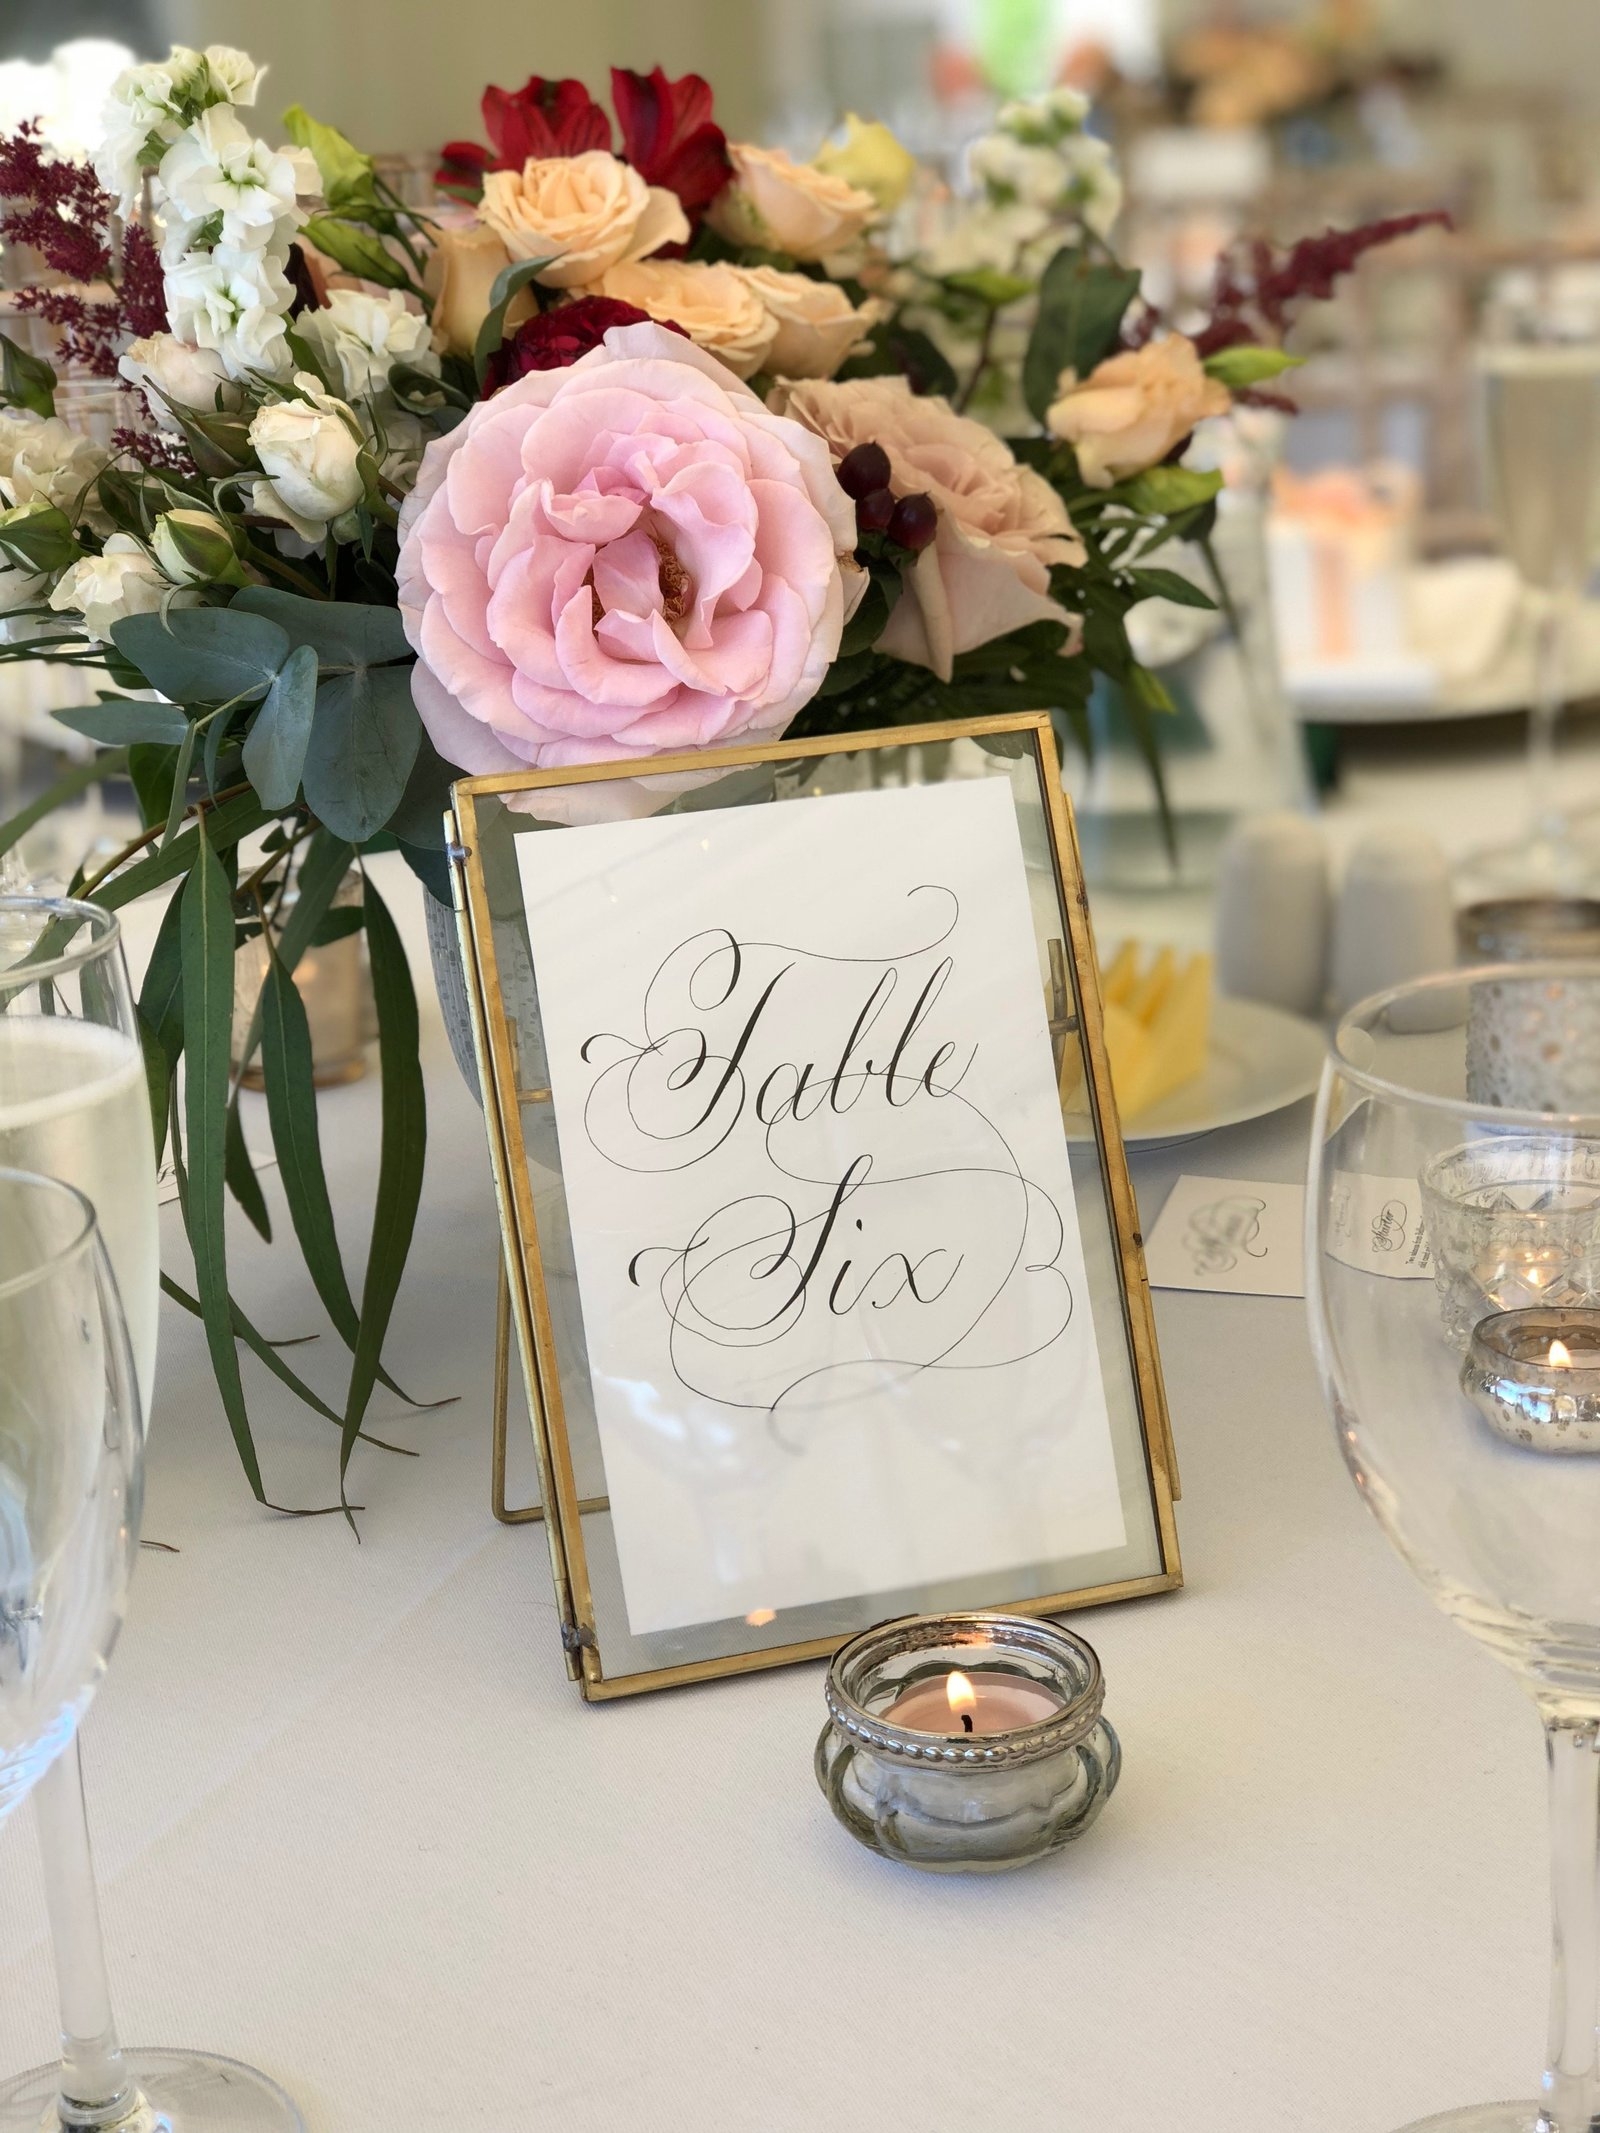 Black Copperplate calligraphy signs for Scottish wedding